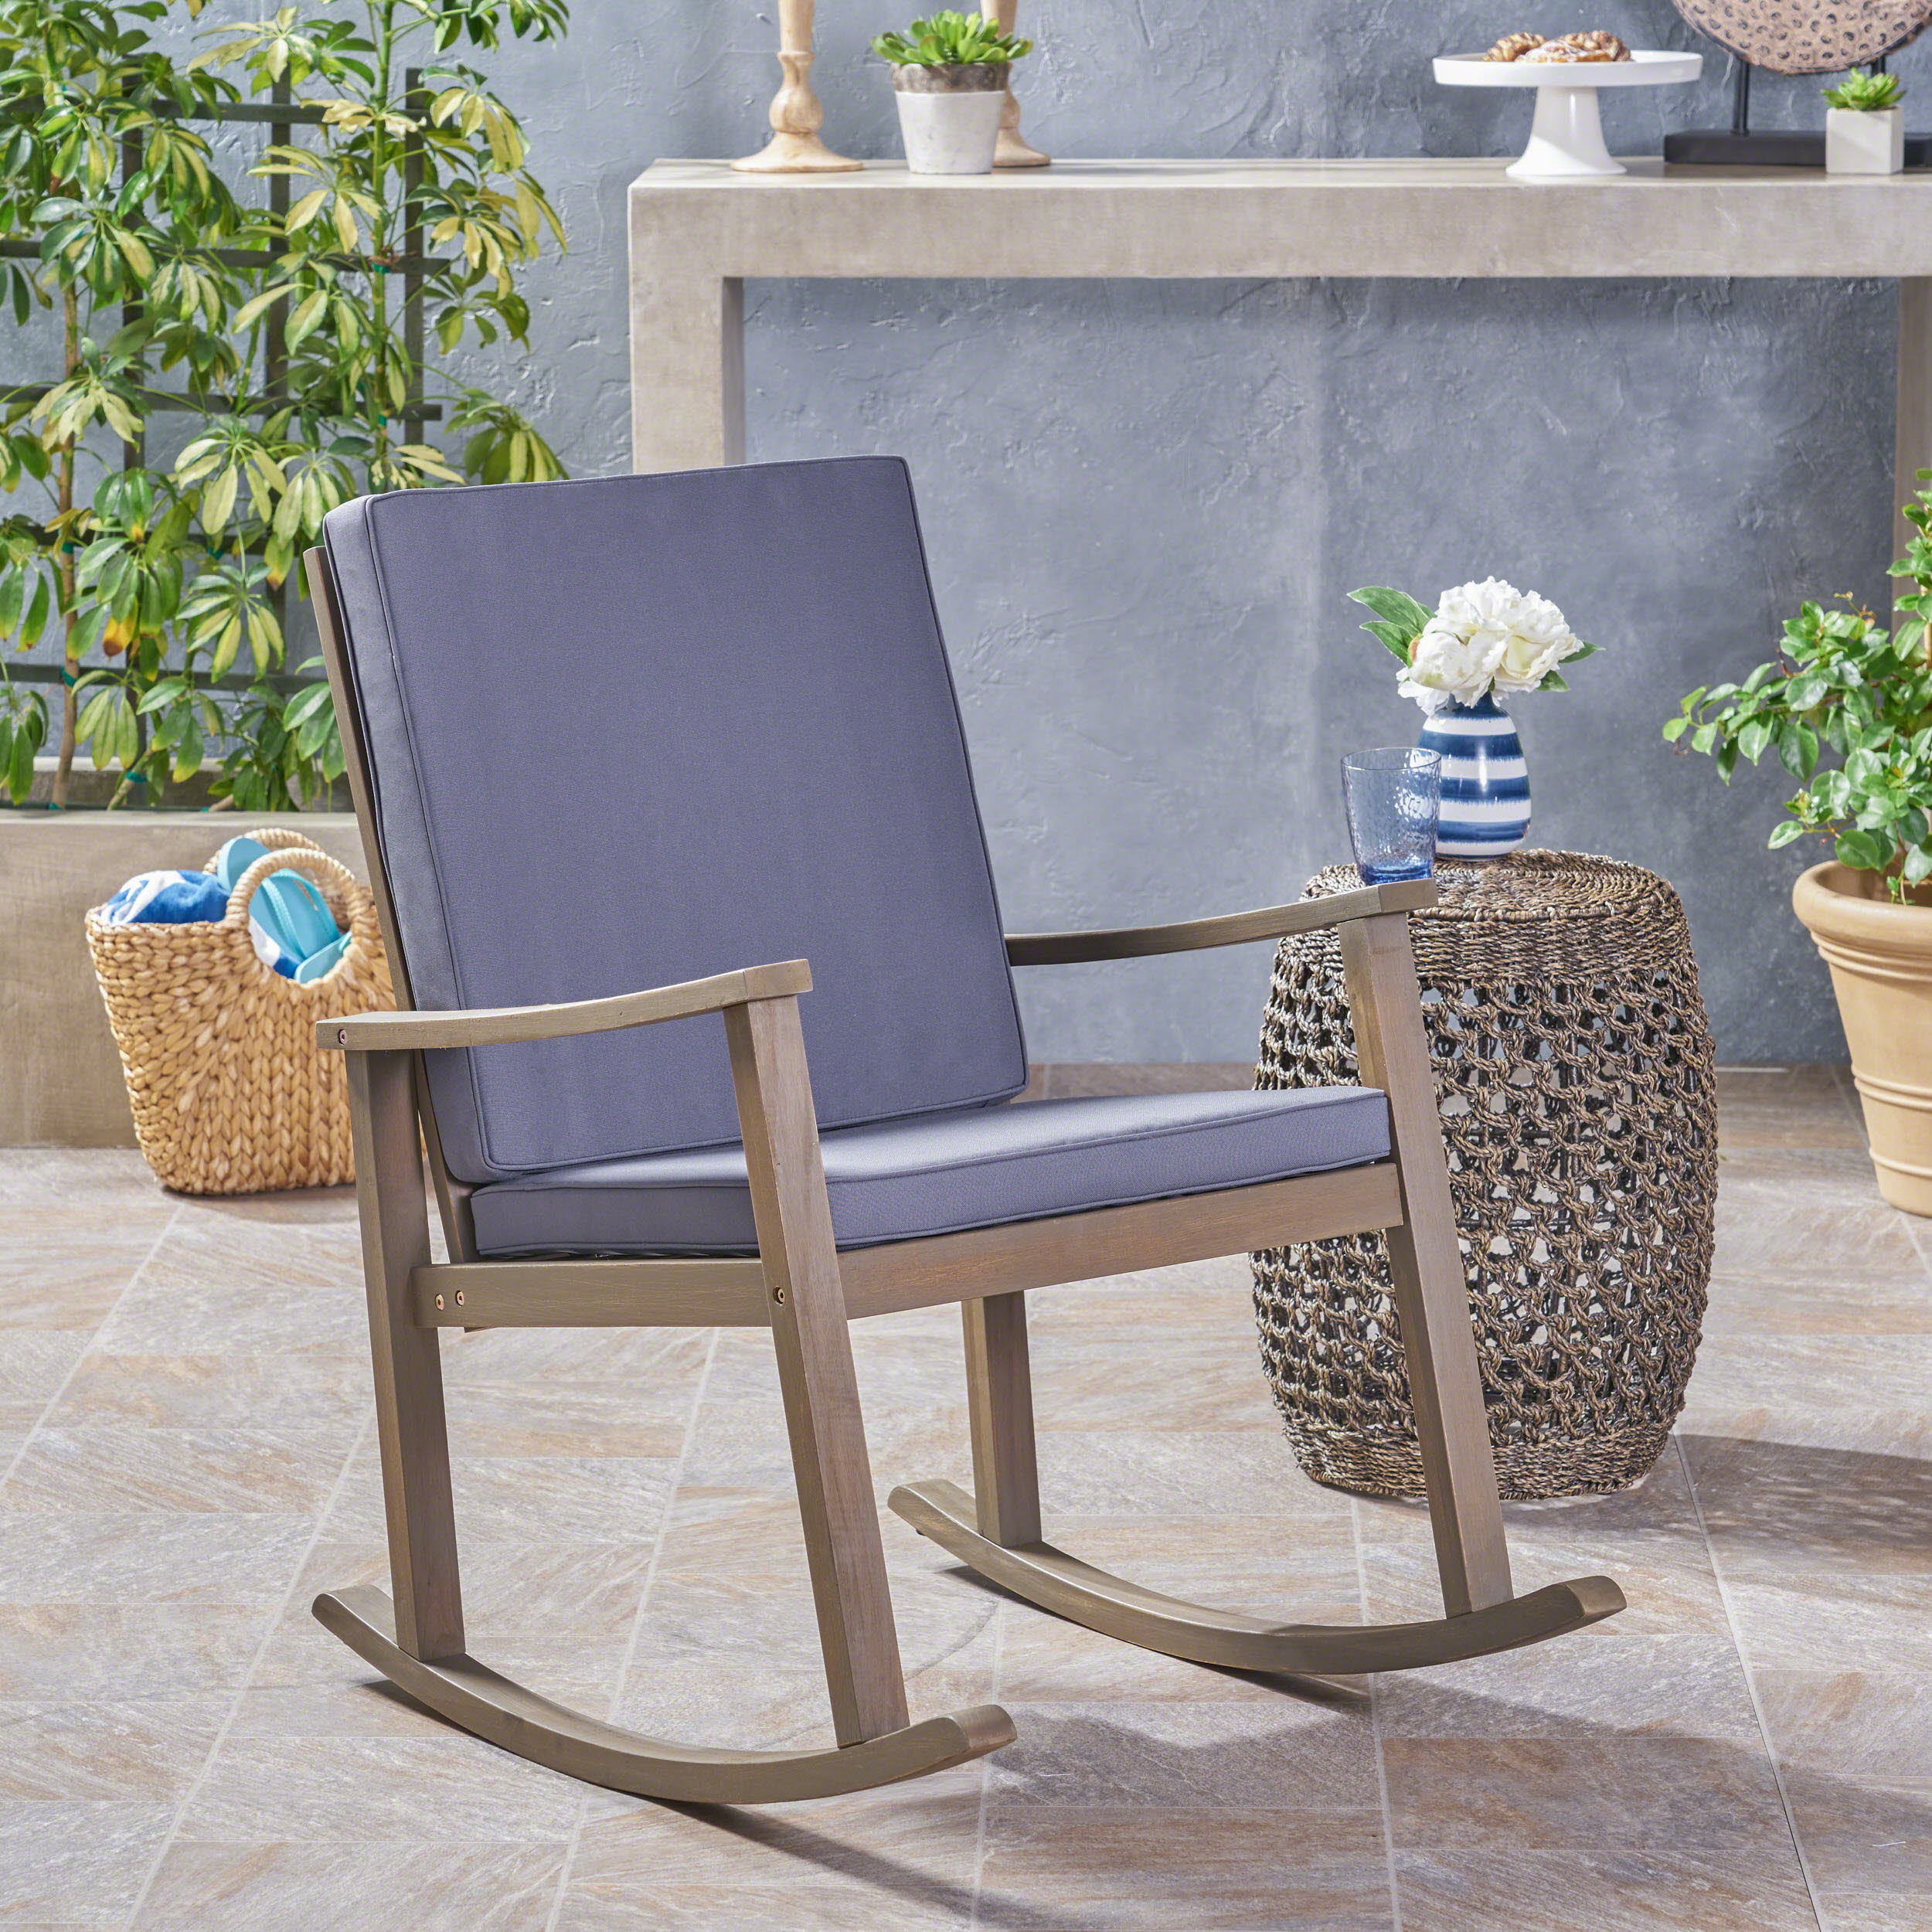 Outdoor Acacia Wood Rocking Chair With Cushion Grey